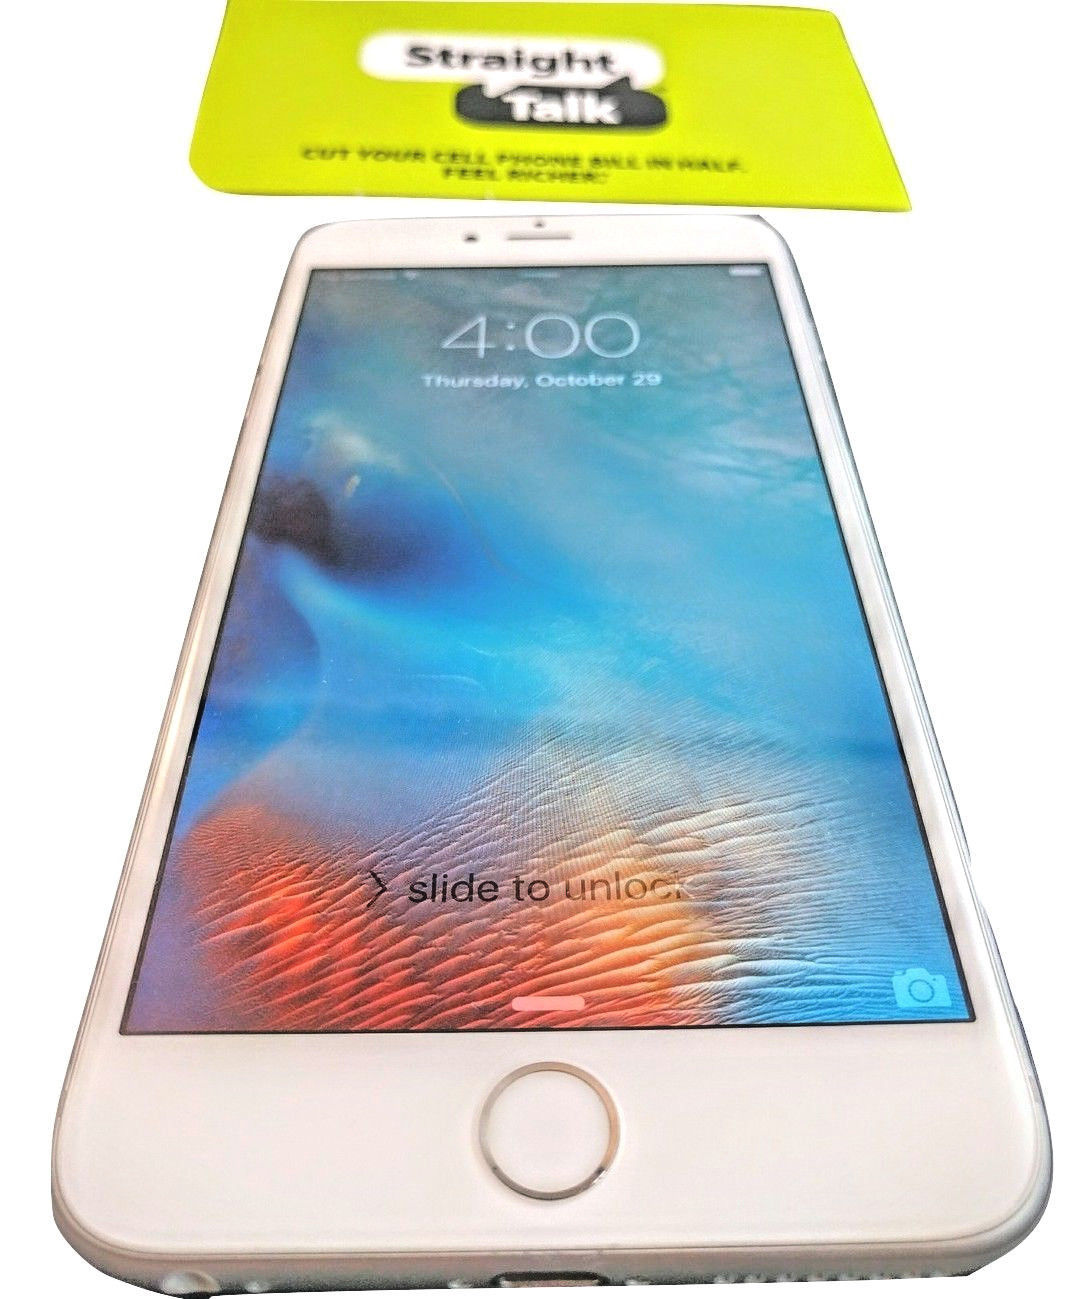 Apple iPhone 6 Plus - 16GB - Silver Straight Talk Smartphone AT&T VERY GOOD COND for sale  USA